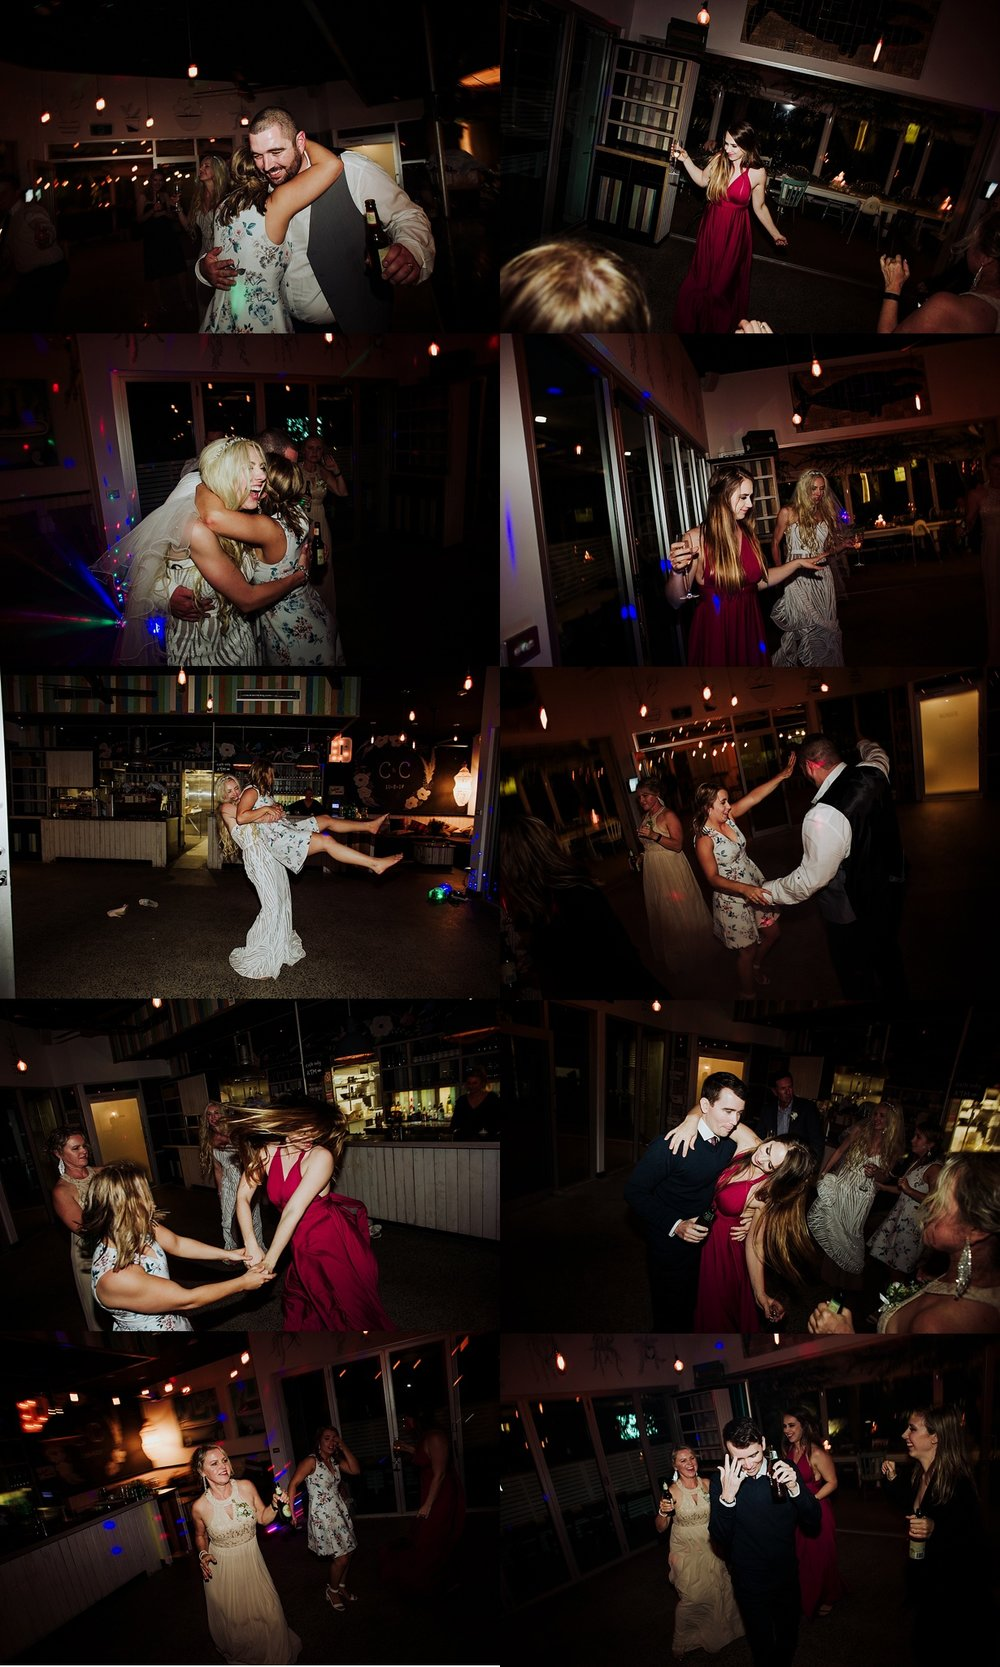 Belongil_Byron_Bay_Restaurant_Wedding_dancing_0001.jpg